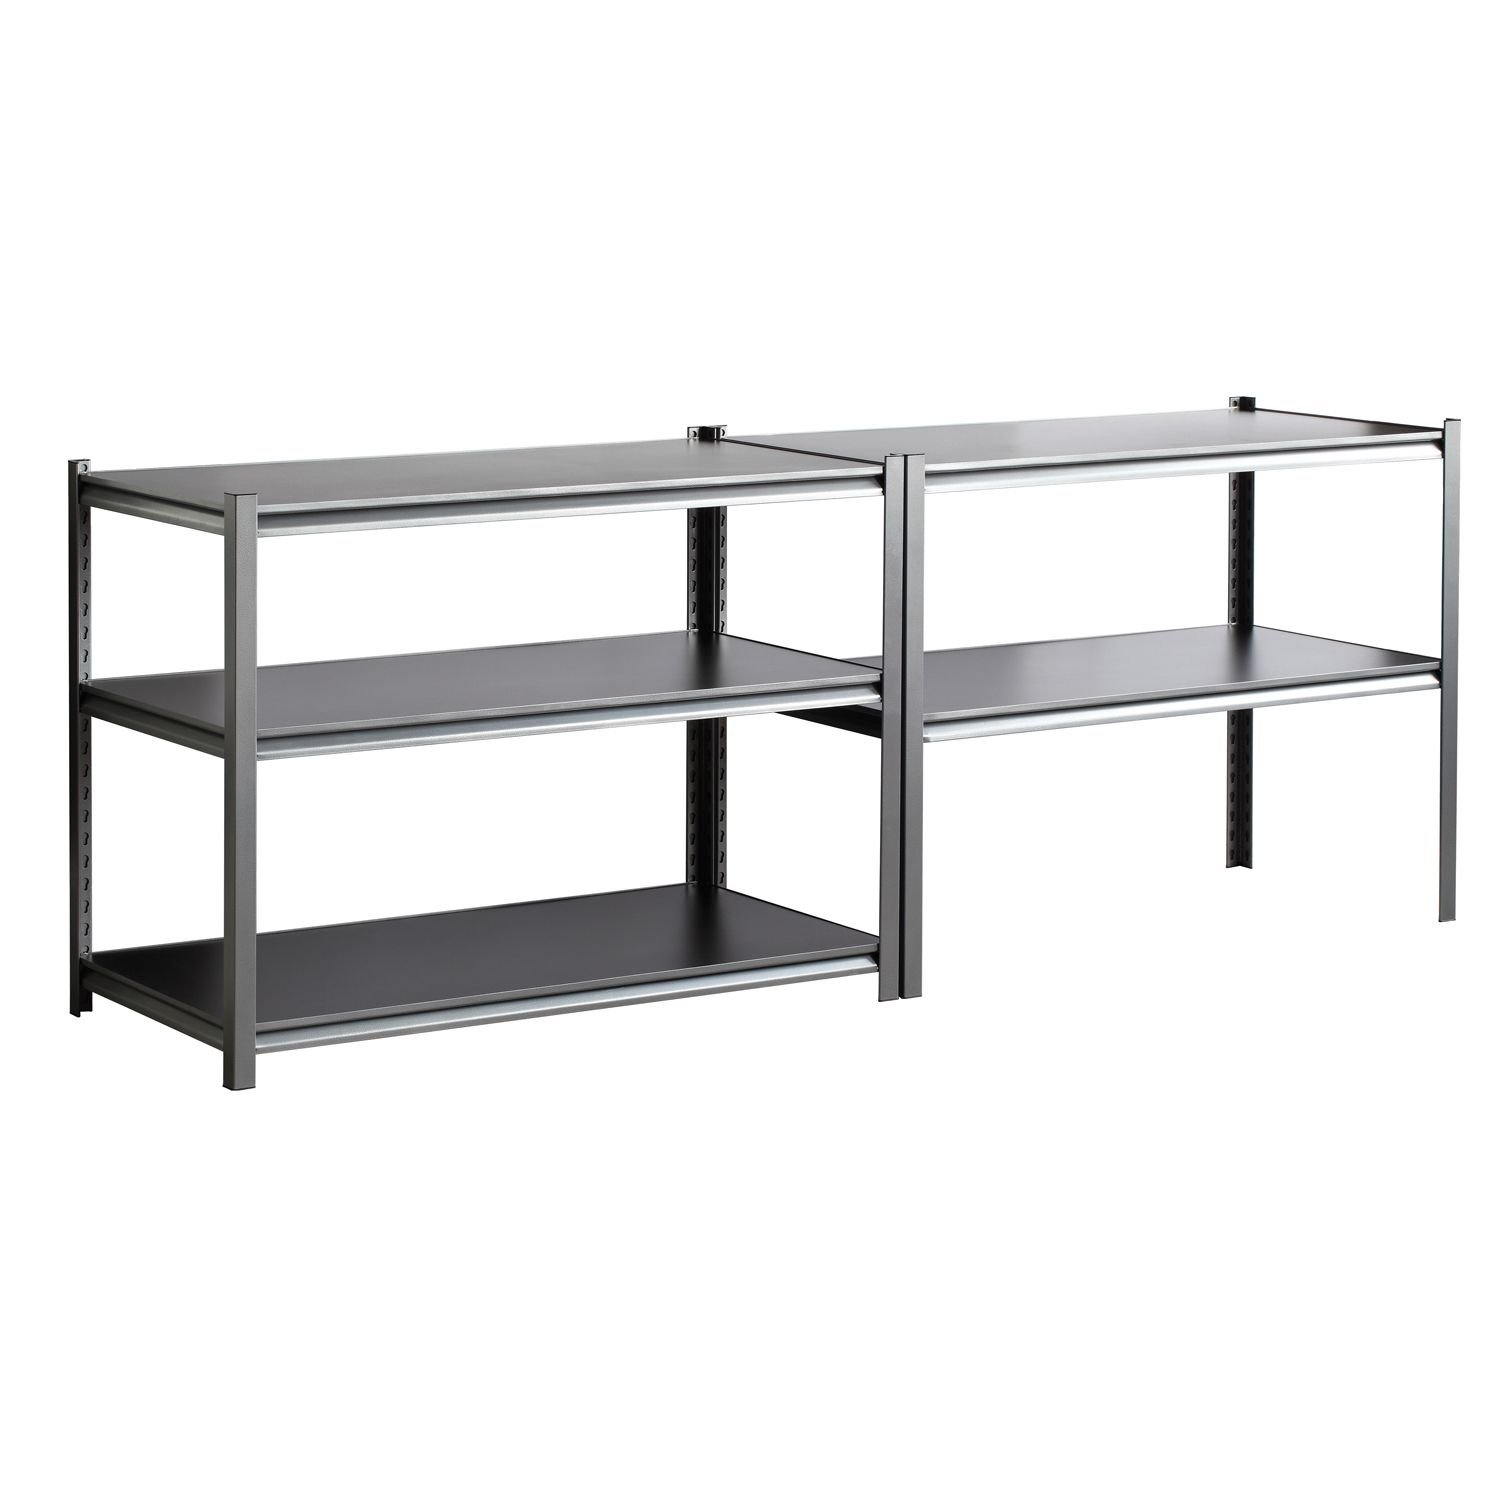 Edsal 5 shelf heavy duty steel shelving - Edsal 5 Shelf Heavy Duty Steel Shelving 1